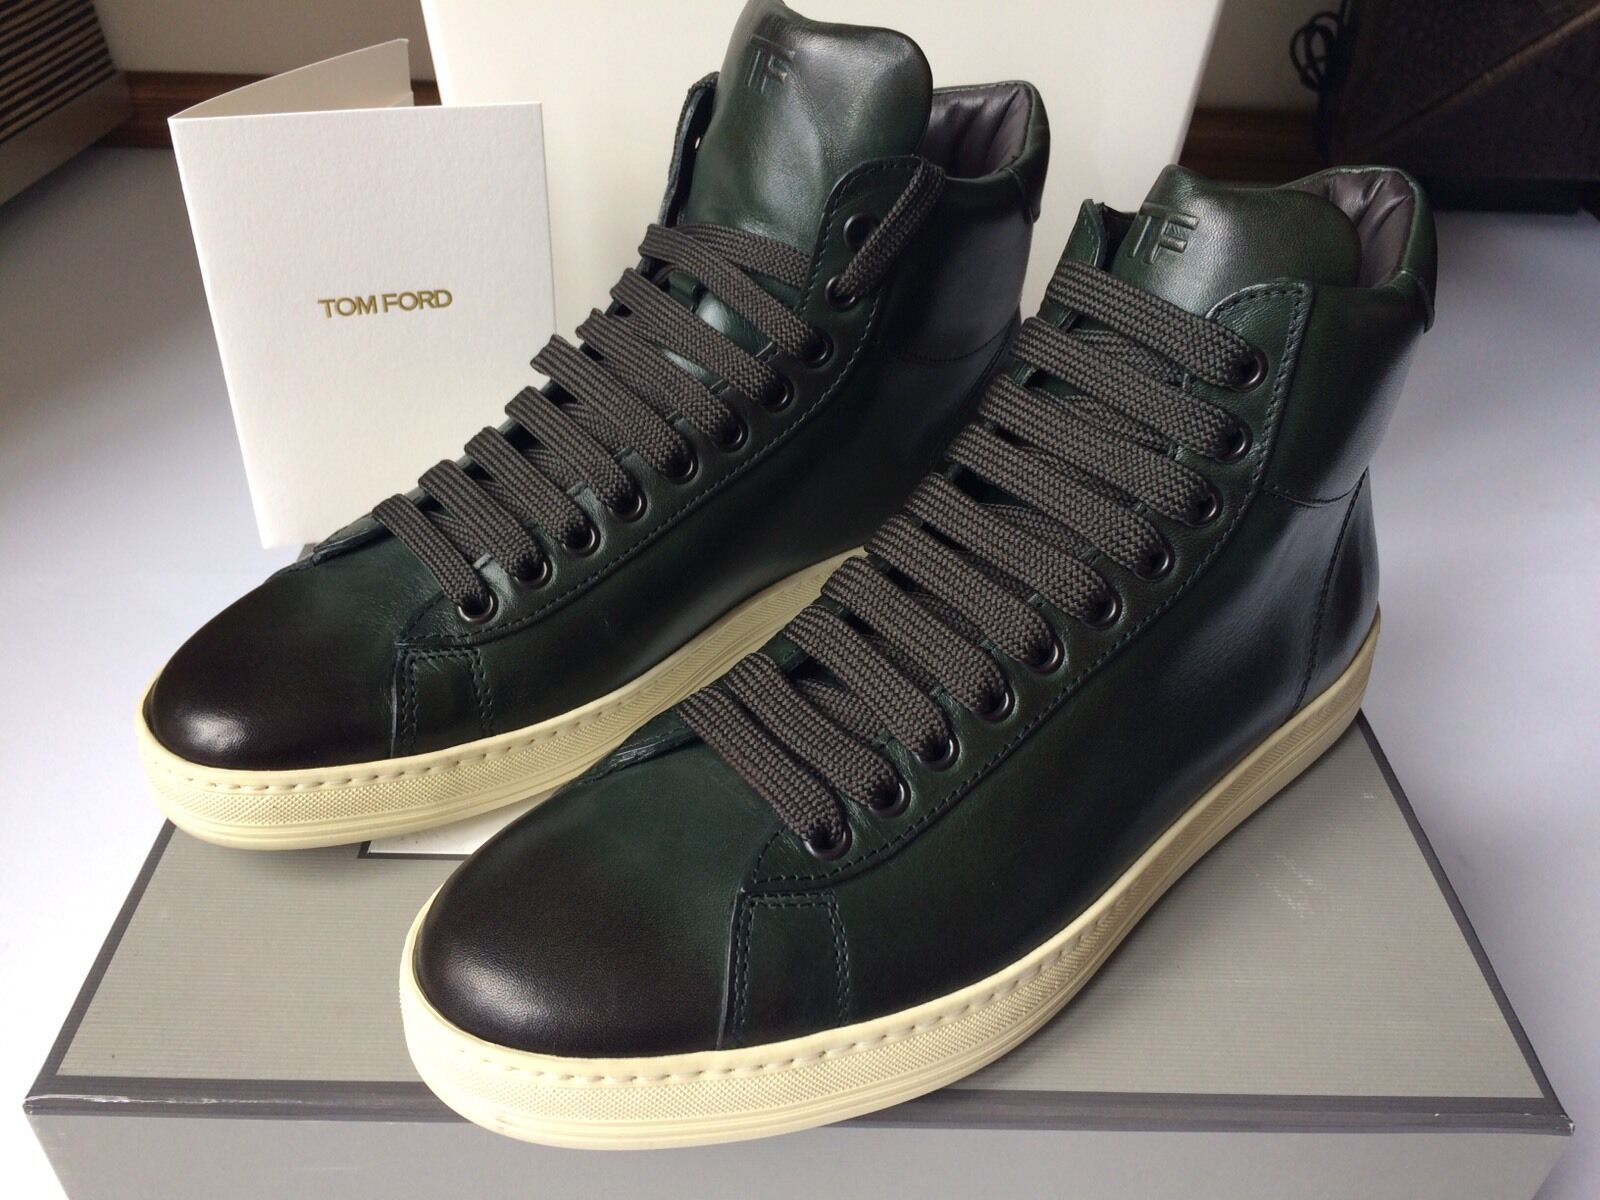 Tom ford Women's Green Flat High Top Leather sneakers us 8 nuevo embalaje original